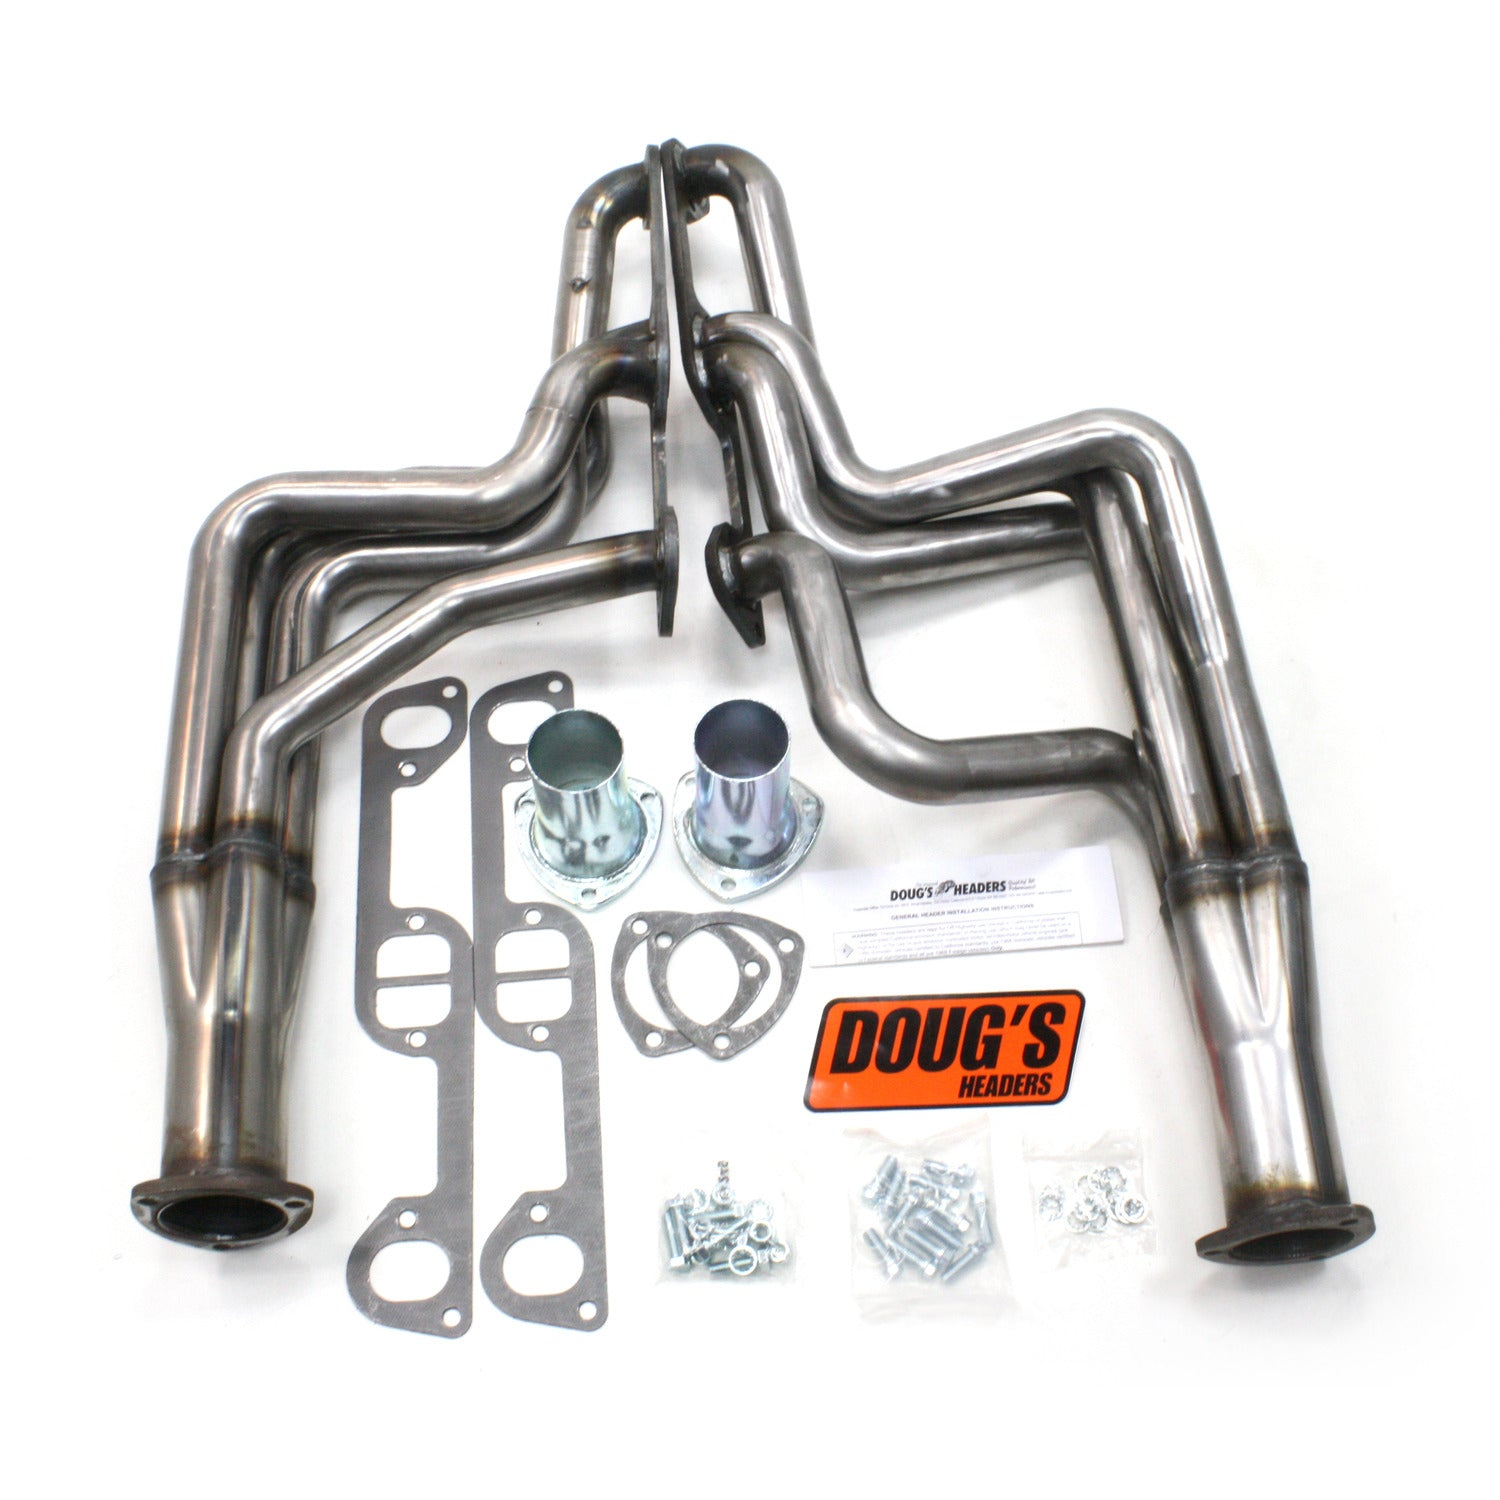 "Doug's Headers D590-R 1 3/4"" 4-Tube Full Length Header Pontiac GTO 326-455 68-72 Raw Steel"